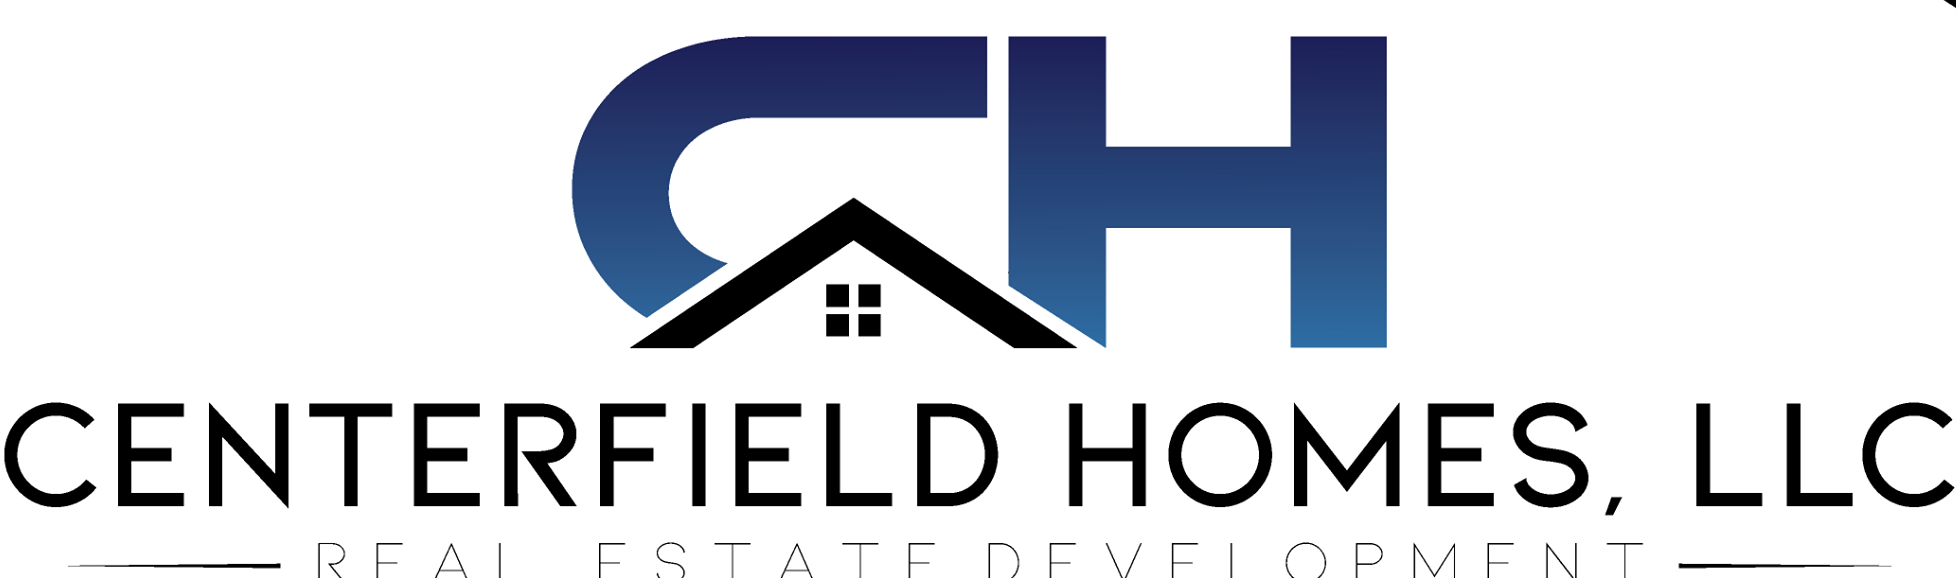 Center Field Homes, LLC